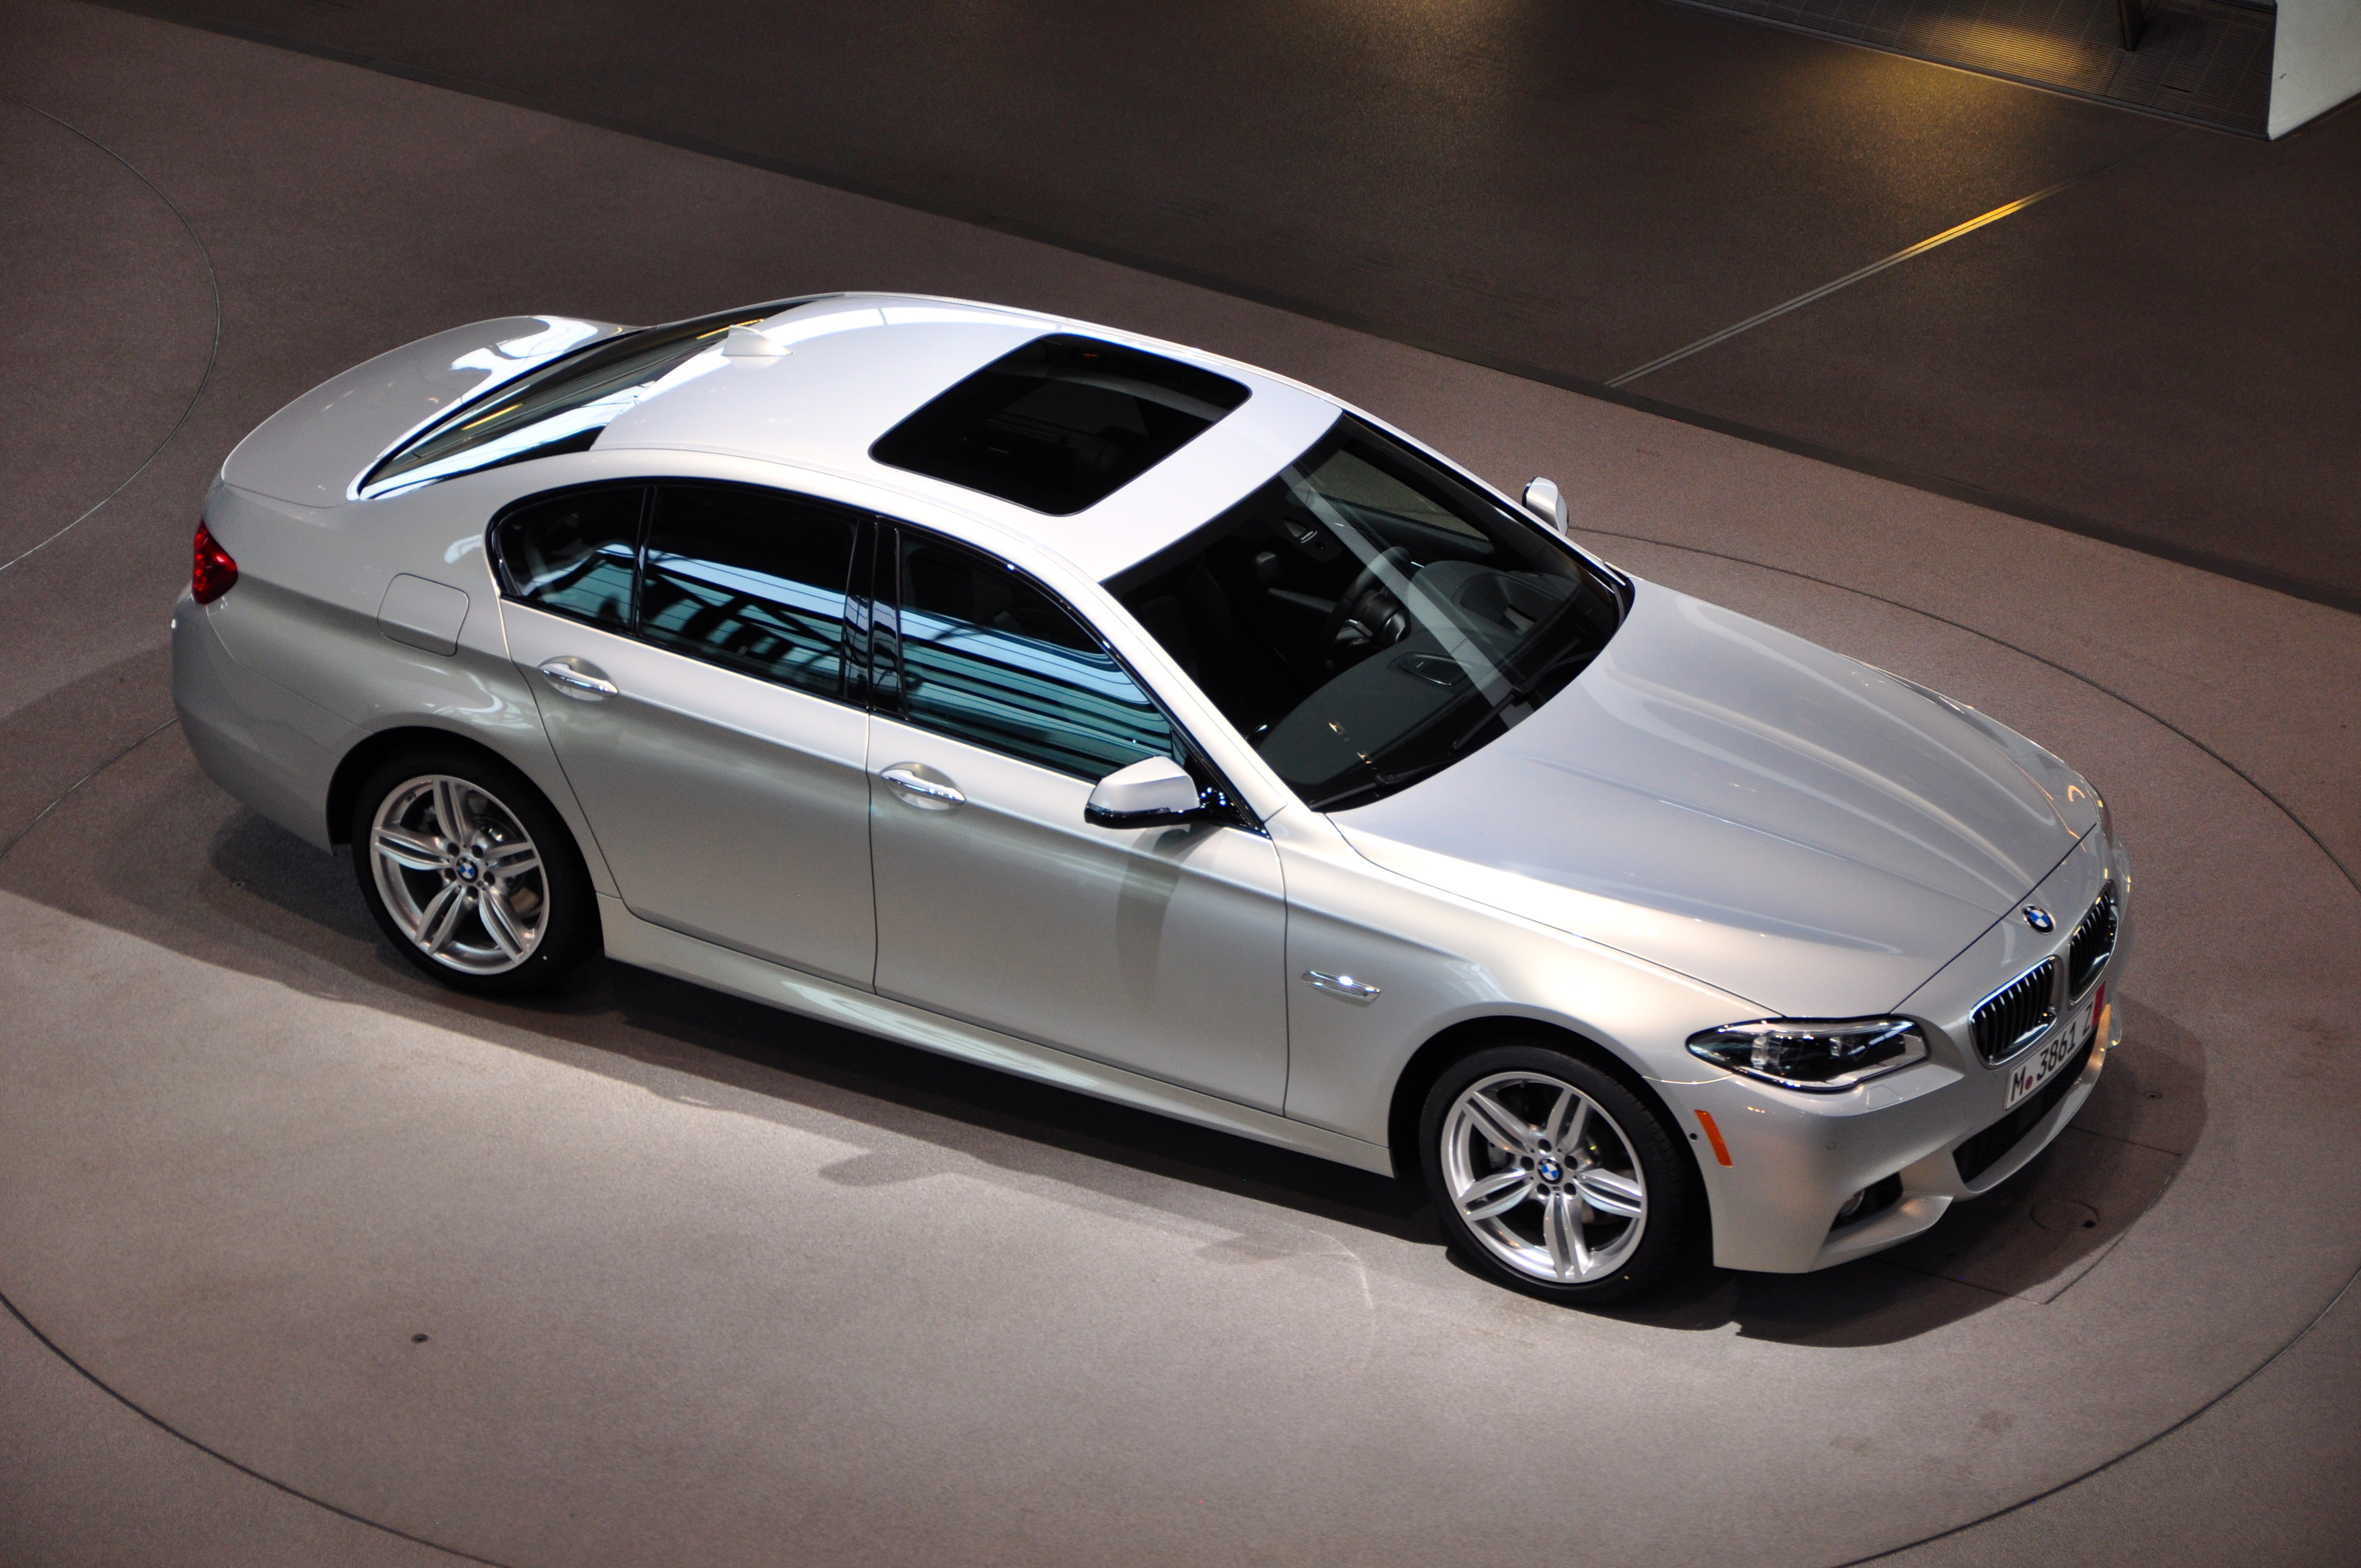 2014 bmw 535d review and road test frequent business. Black Bedroom Furniture Sets. Home Design Ideas